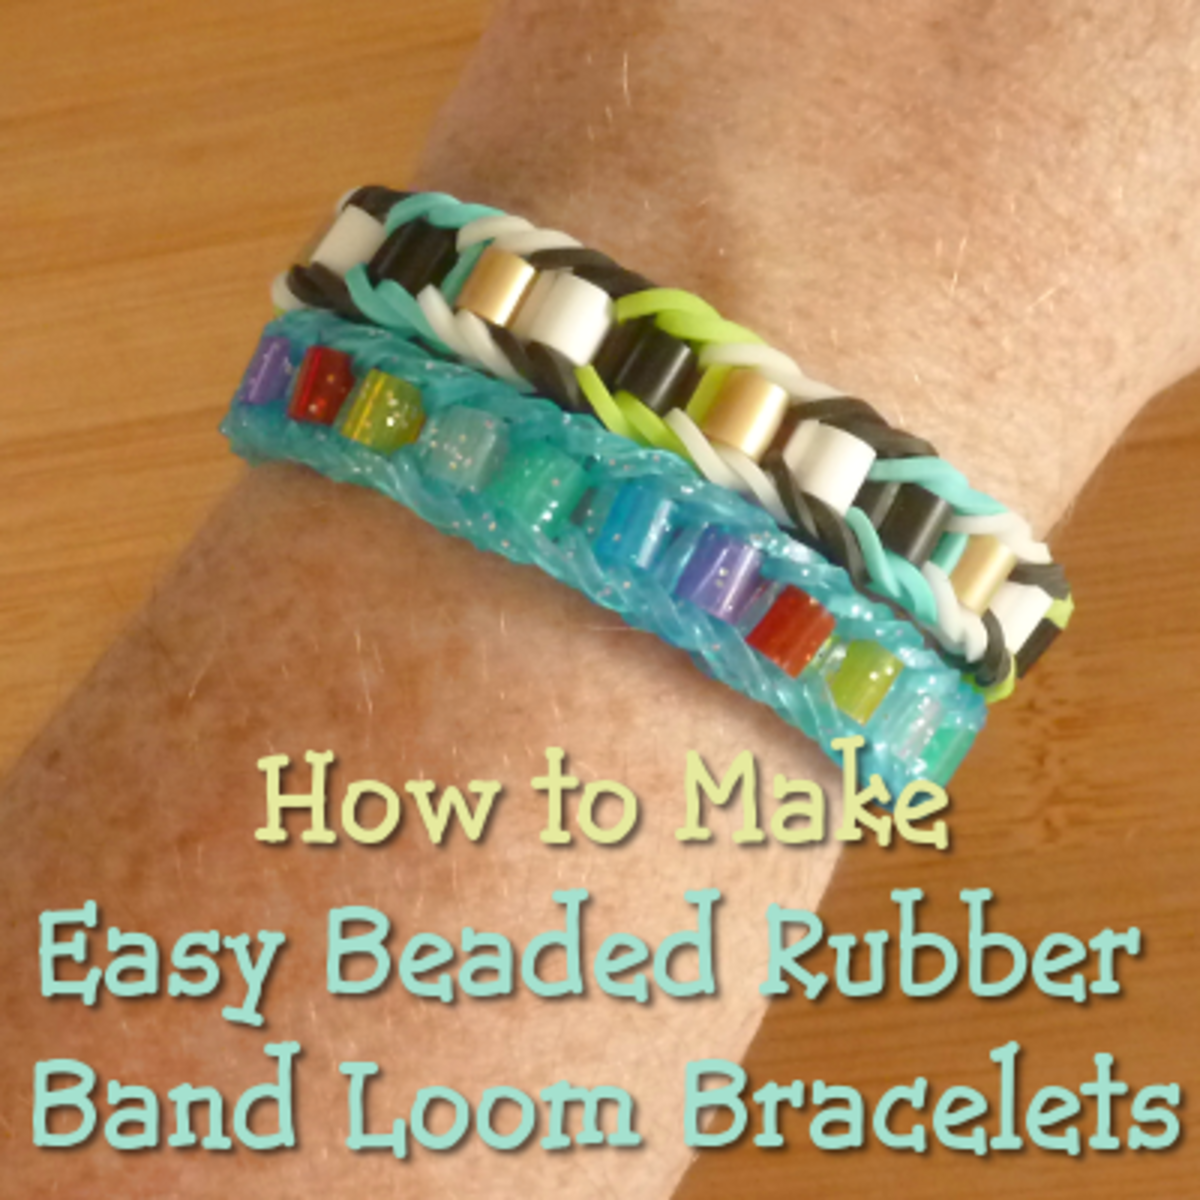 Making Beaded Rubber Band Bracelets for Rainbow Loom and Monster Tail